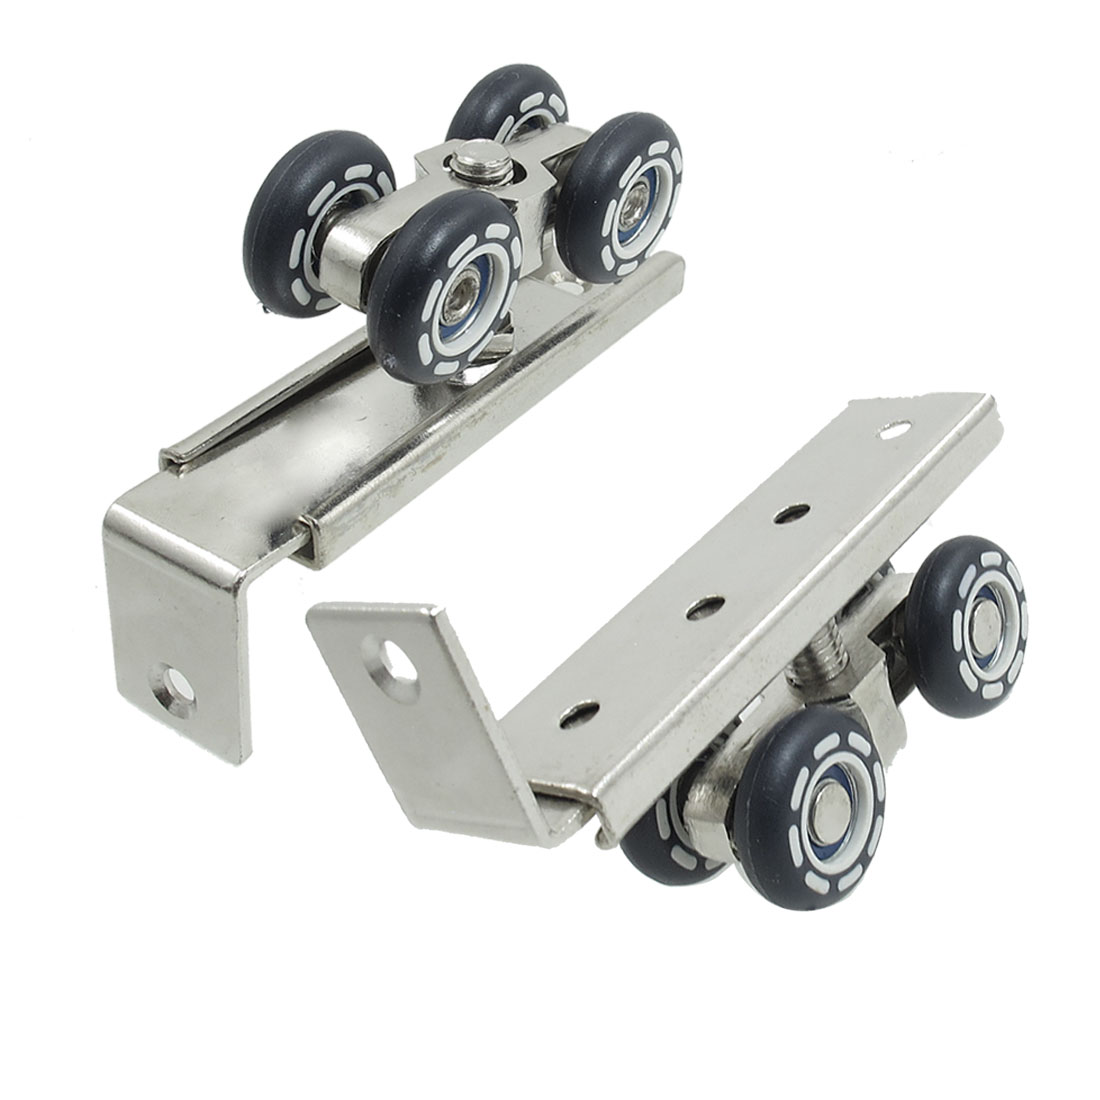 Unique Bargains Dark Blue 4-wheel Wardrobe Closet Sliding Door Rollers 2 Pcs at Sears.com